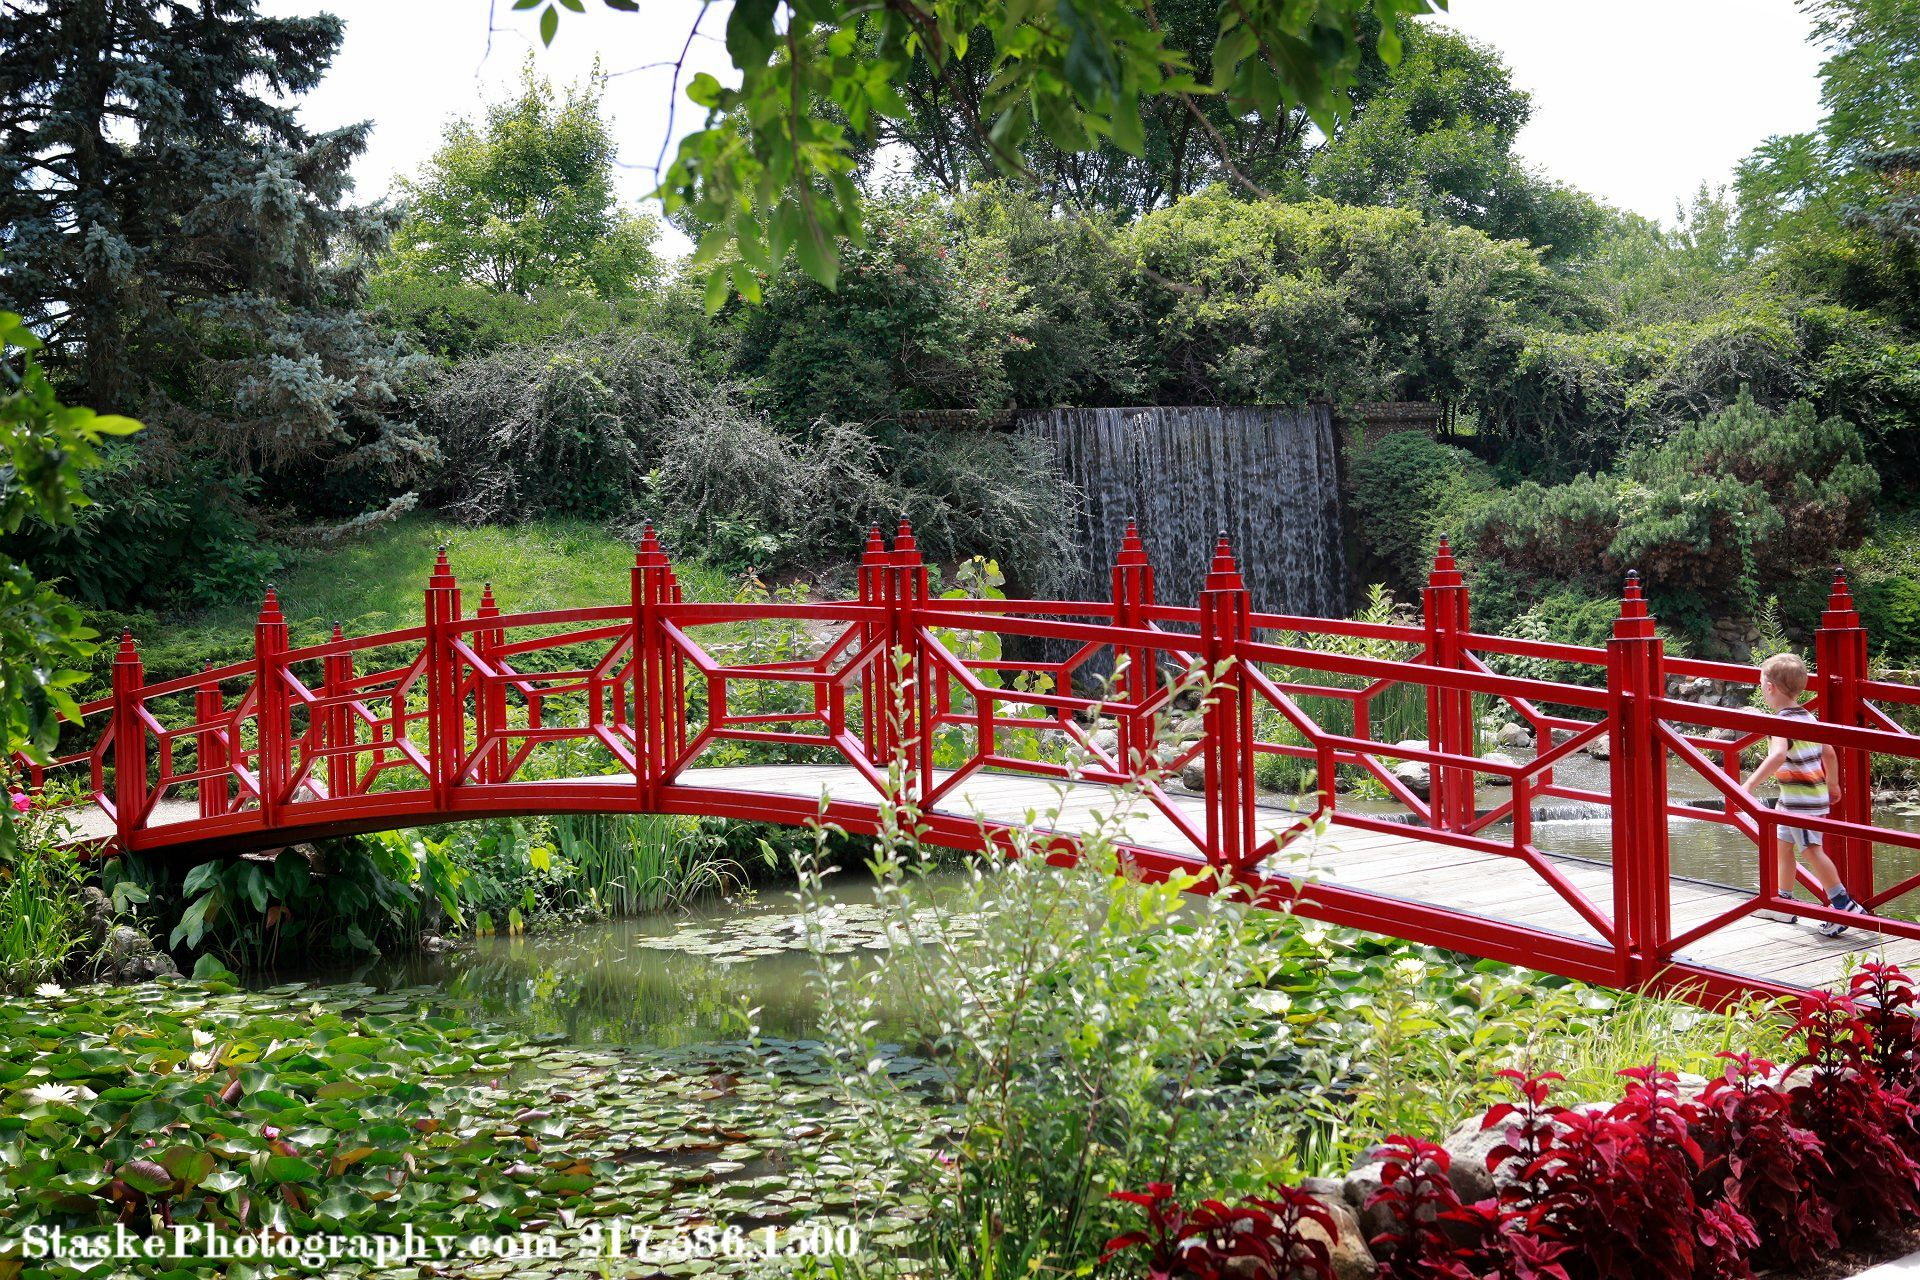 Botanical Gardens at Lake of the Woods Park – Mahomet, IL